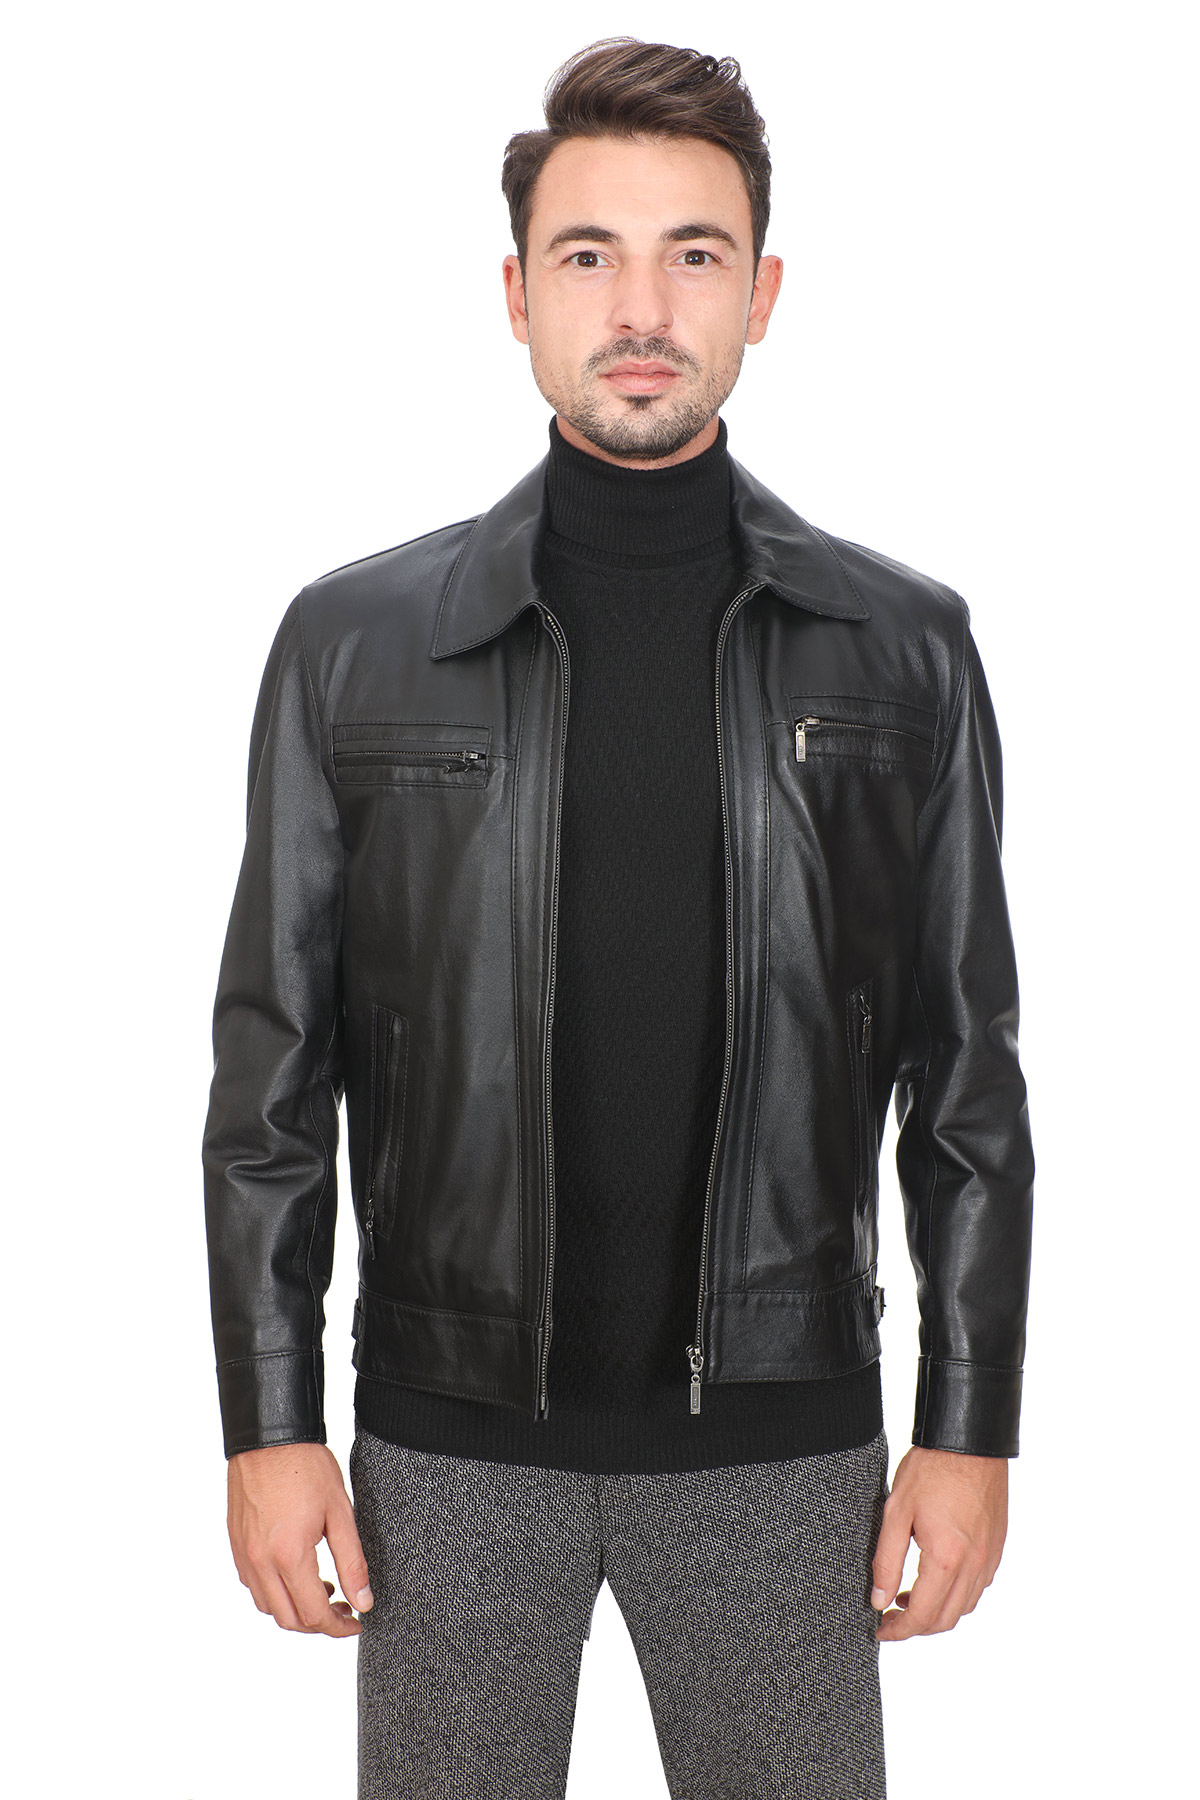 Do Real Leather Jackets Squeak